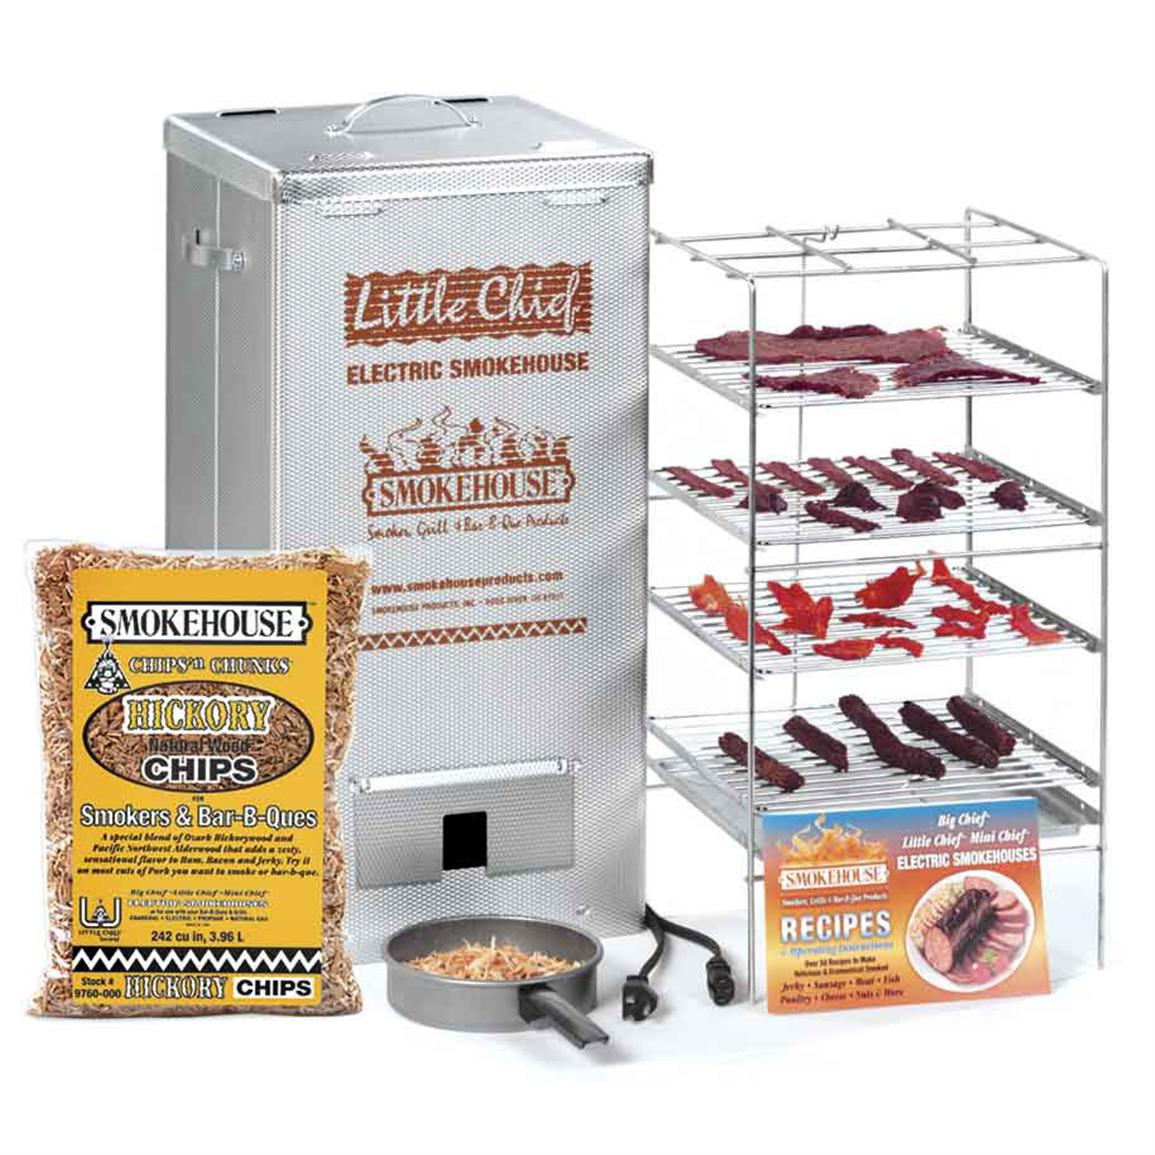 Smokehouse® Little Chief Top-Load Smoker